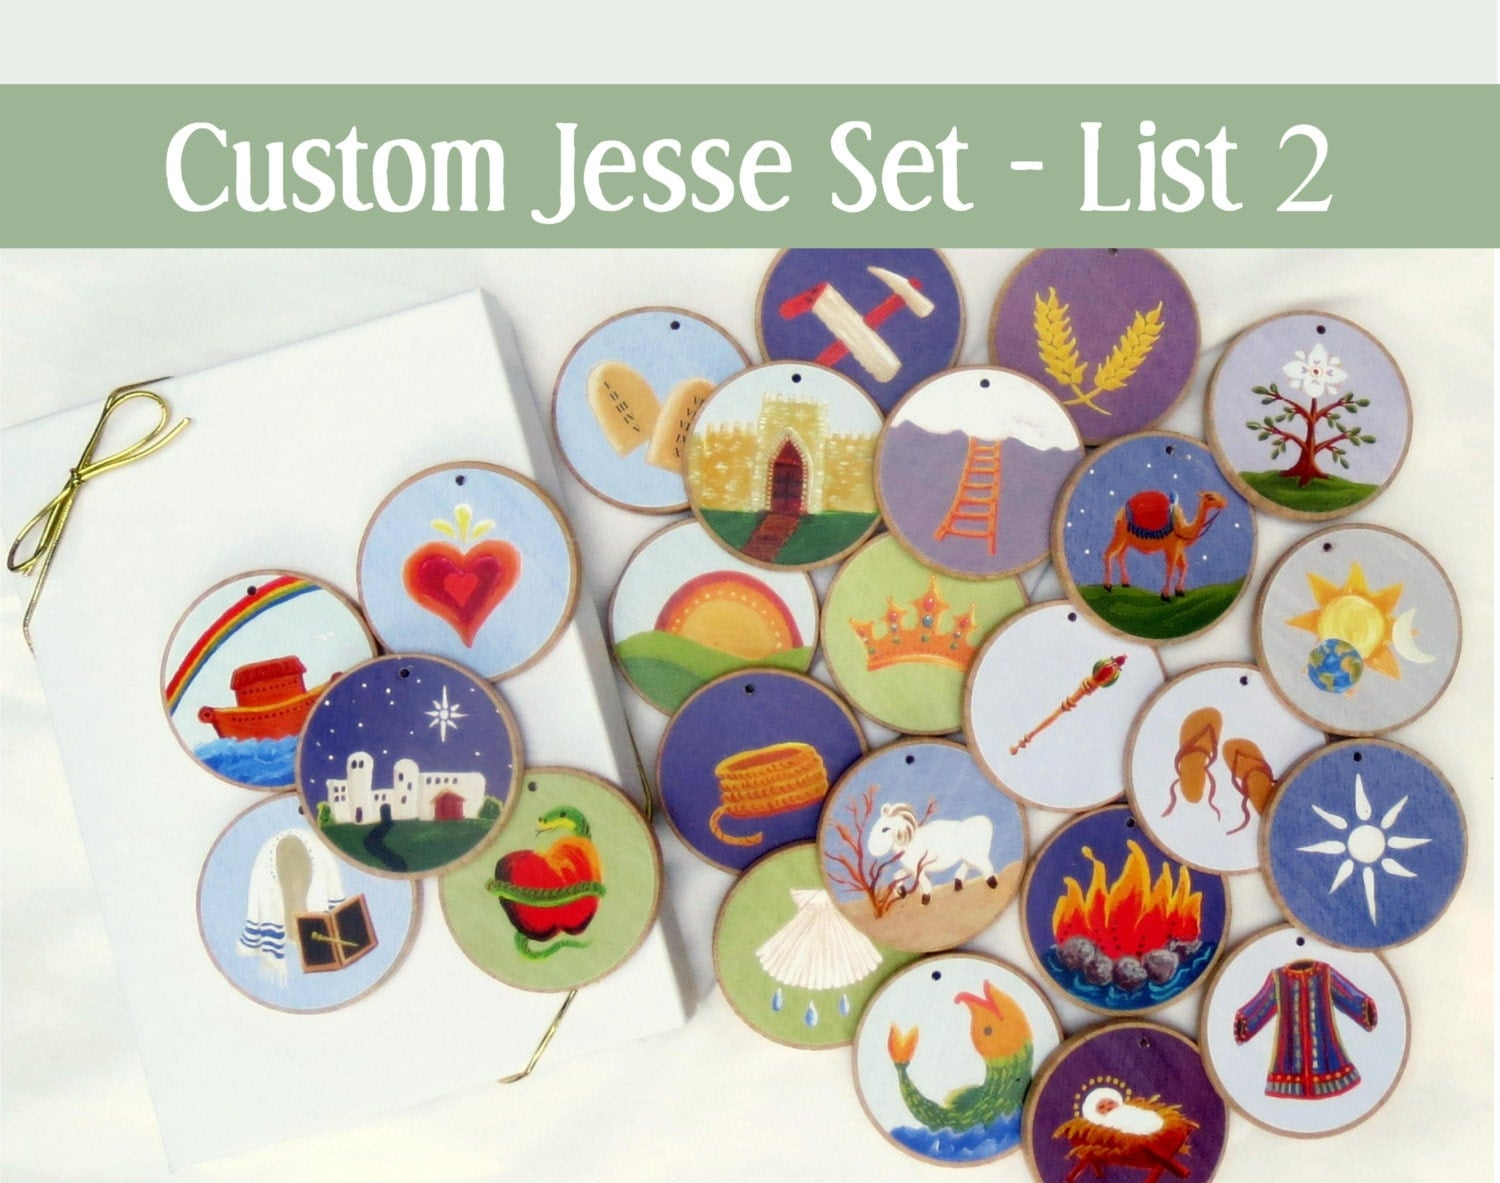 Custom Jesse Tree Ornaments Often Ordered List 2 For